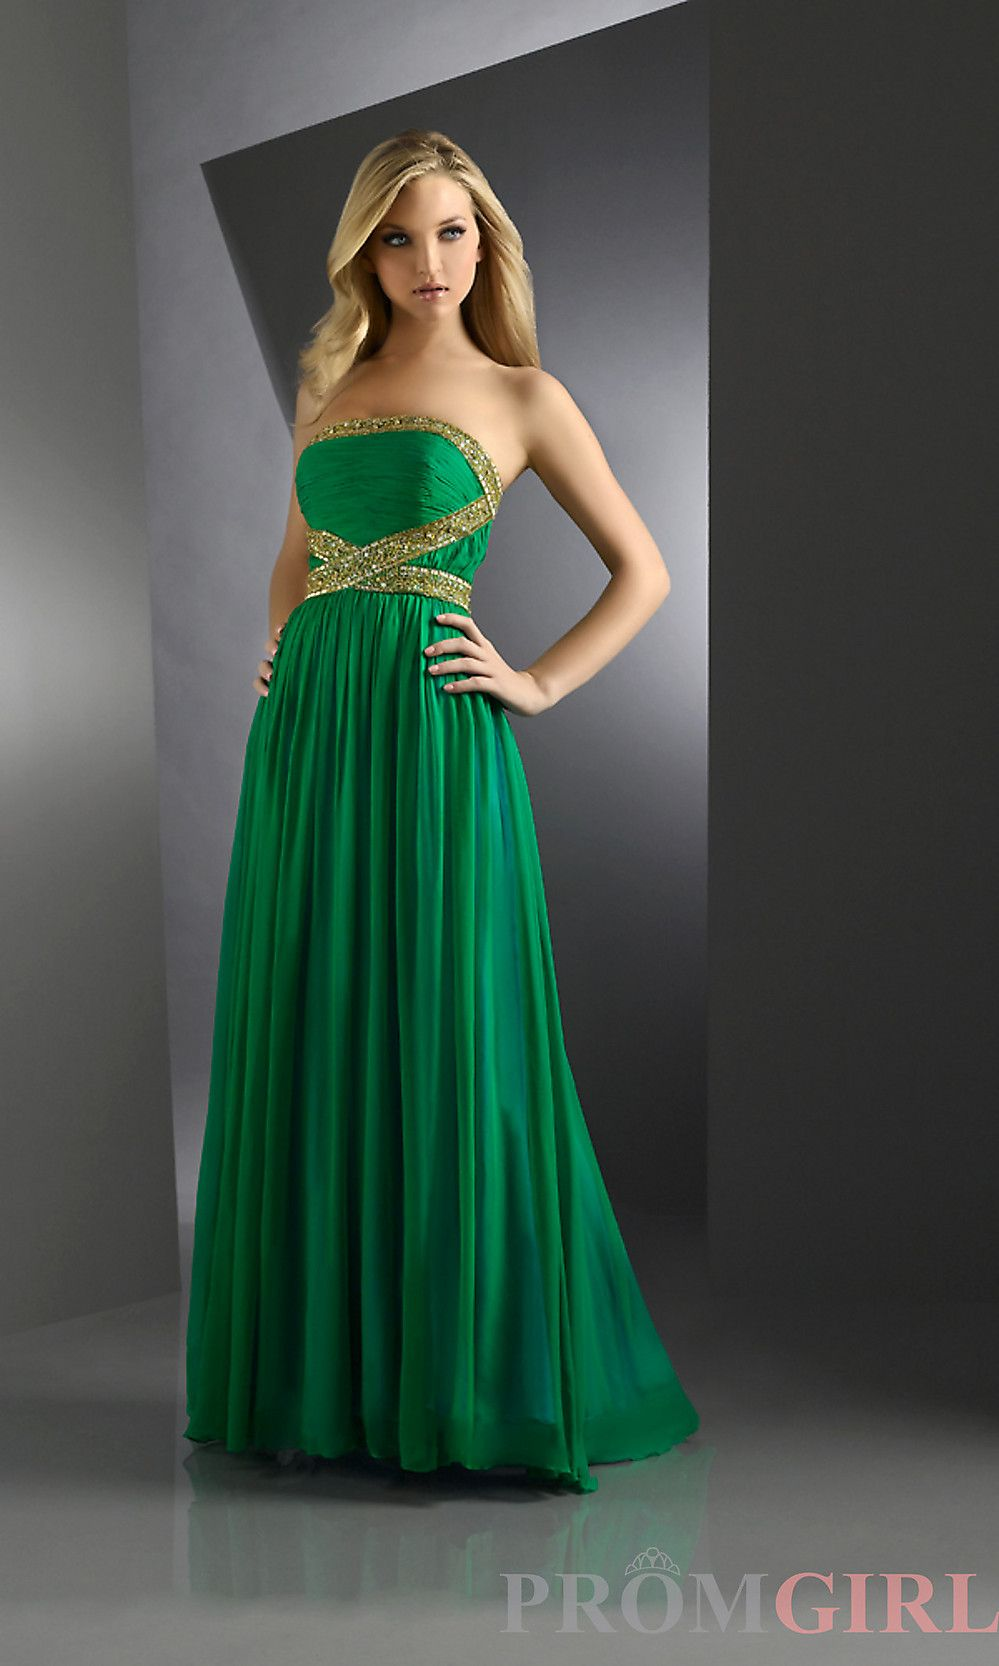 Annnnd Green Dresses tonight folks! Who could resist a pretty green ...